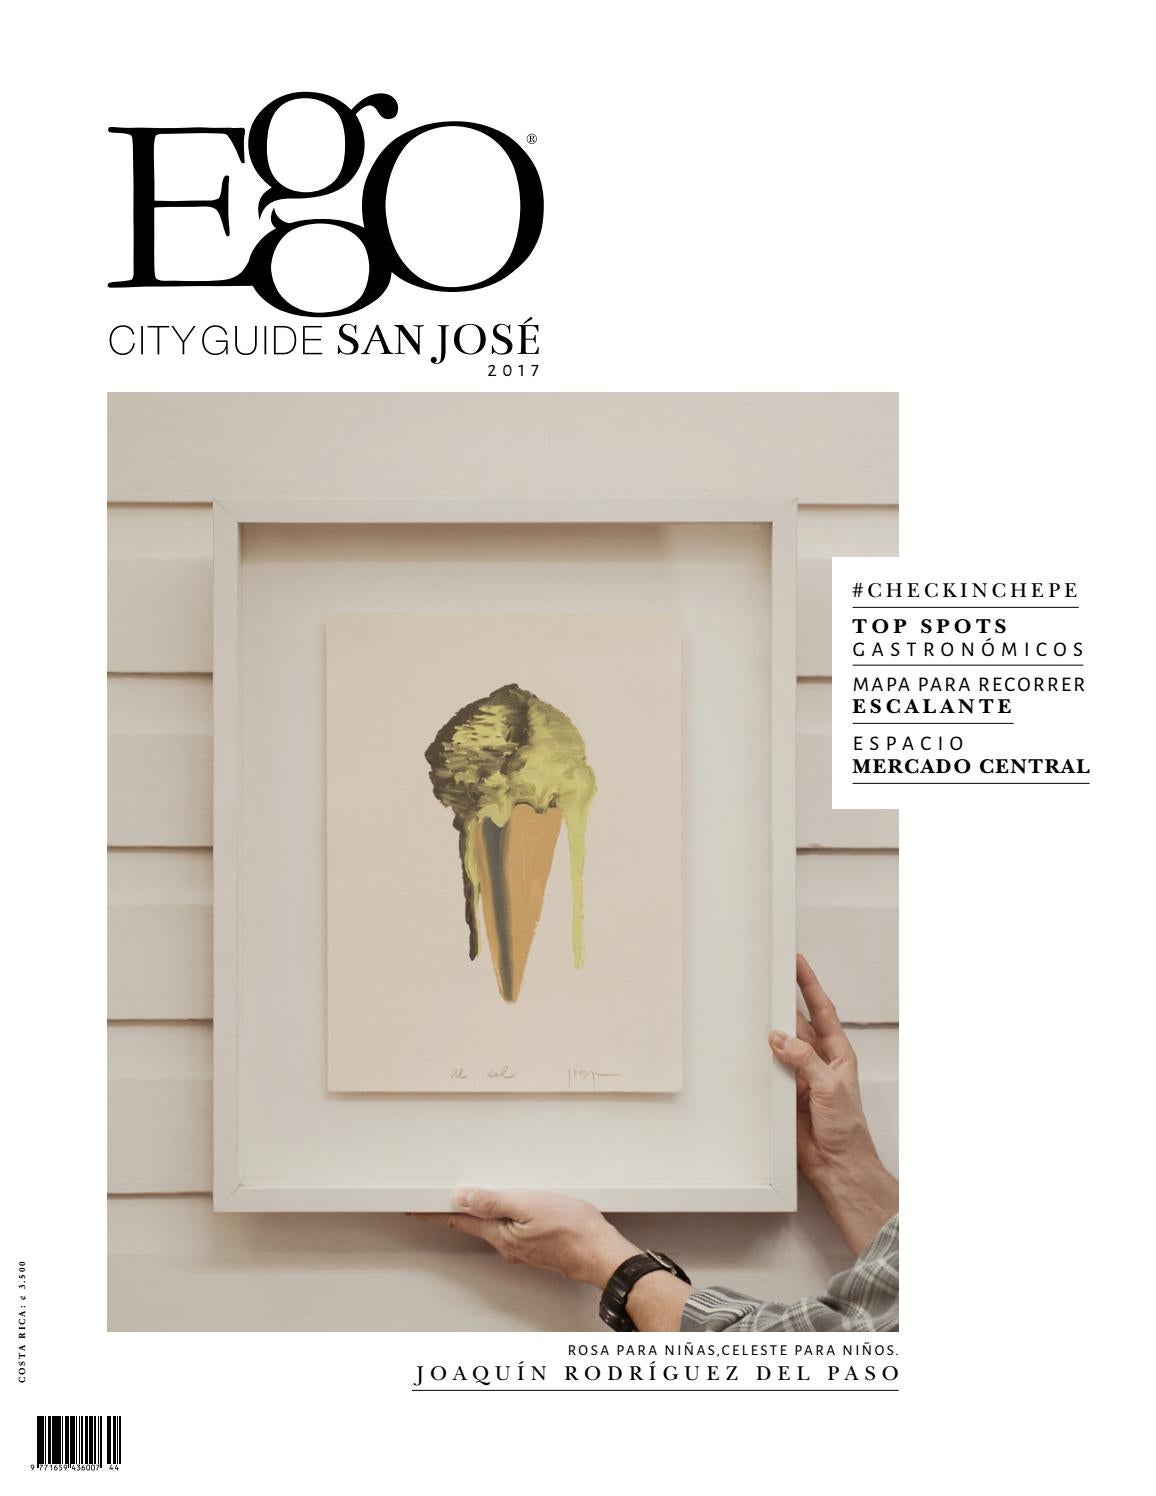 EGO 44 - CITY GUIDE SAN JOSÉ by Made Community - issuu